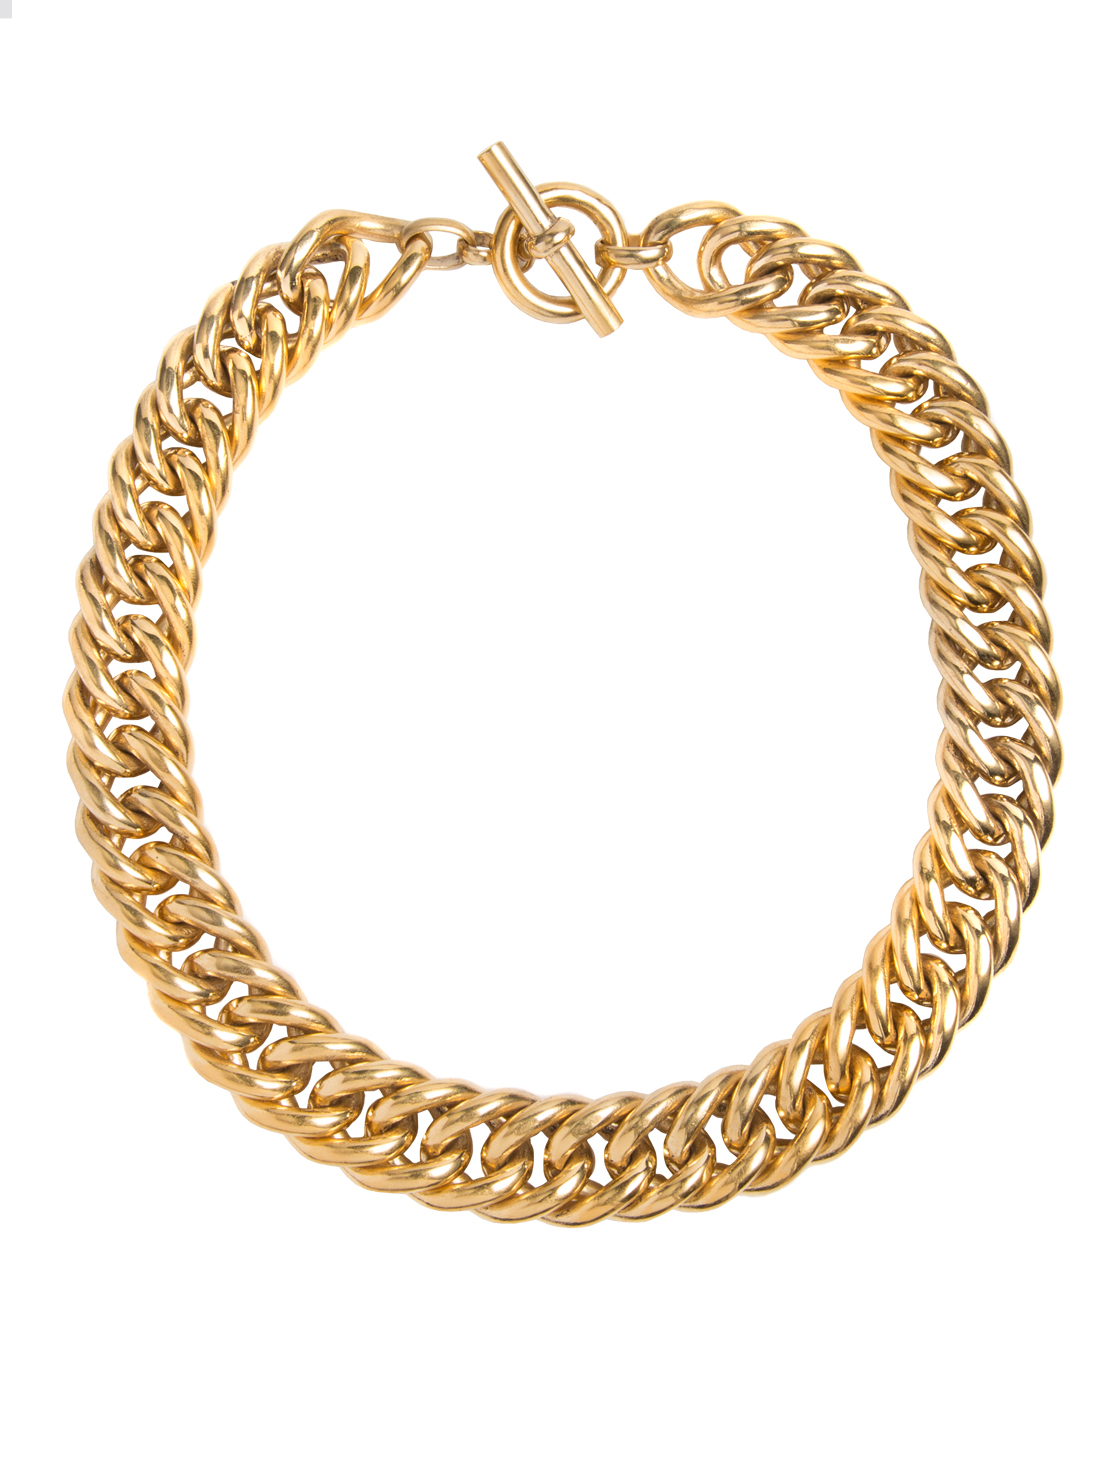 Large Gold Curb Chain Necklace – Tilly Sveaas Jewellery Pertaining To Best And Newest Curb Chain Necklaces (View 8 of 25)